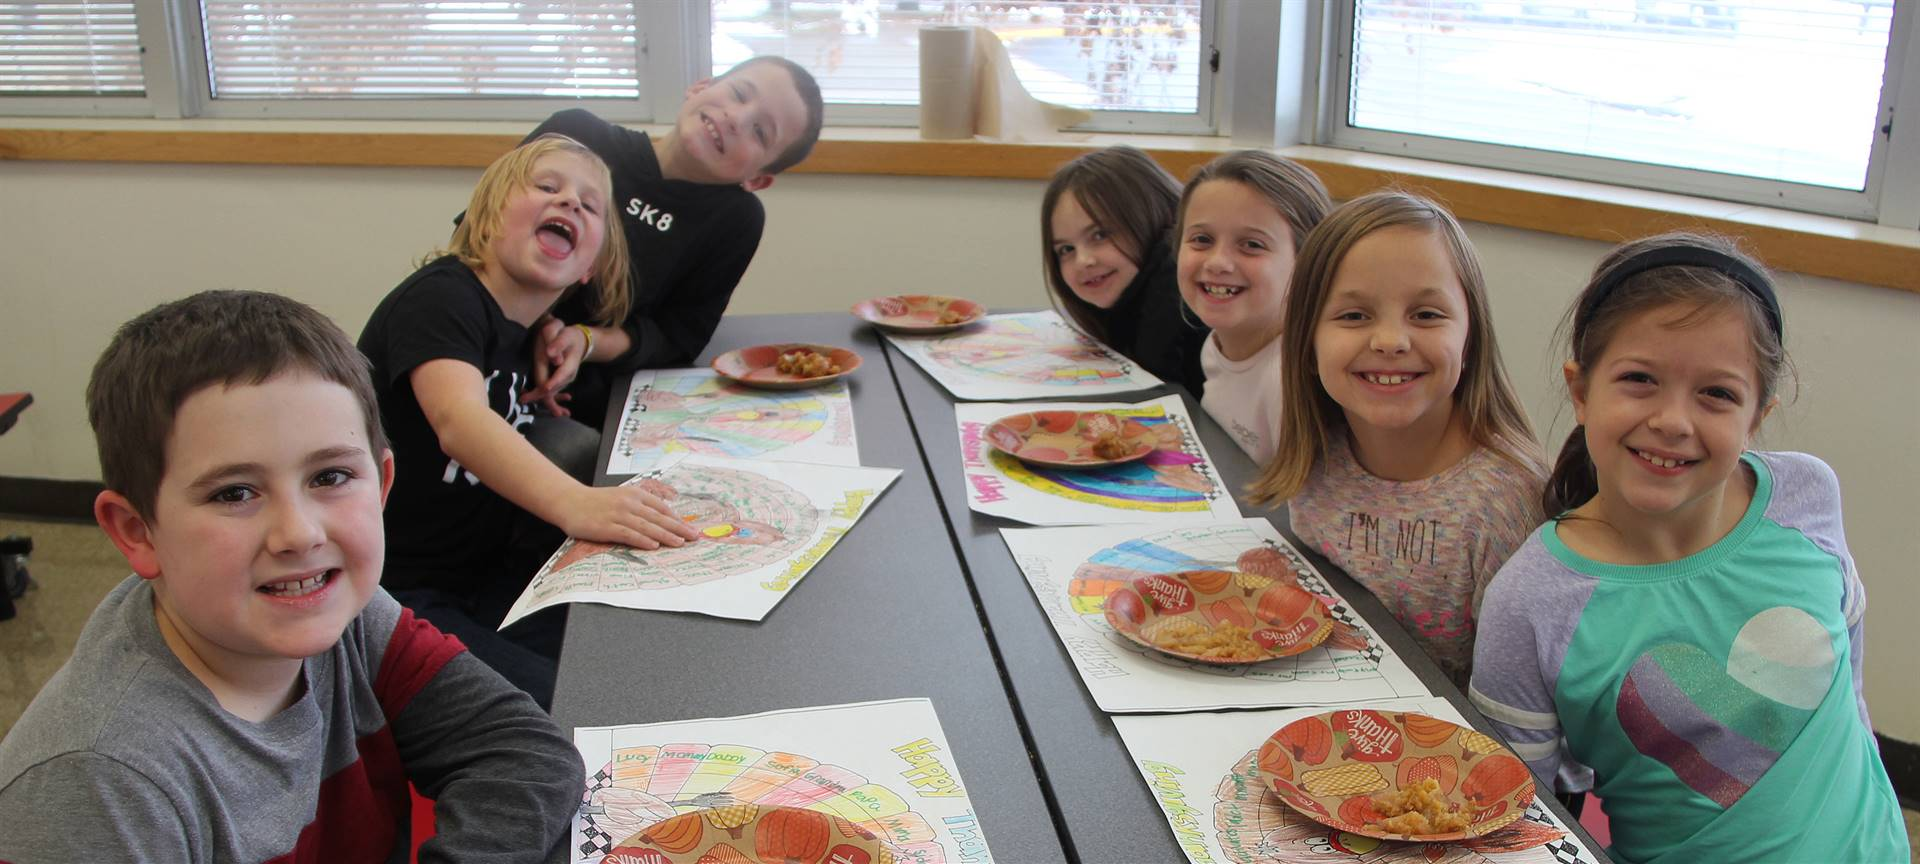 students smiling at cafeteria table